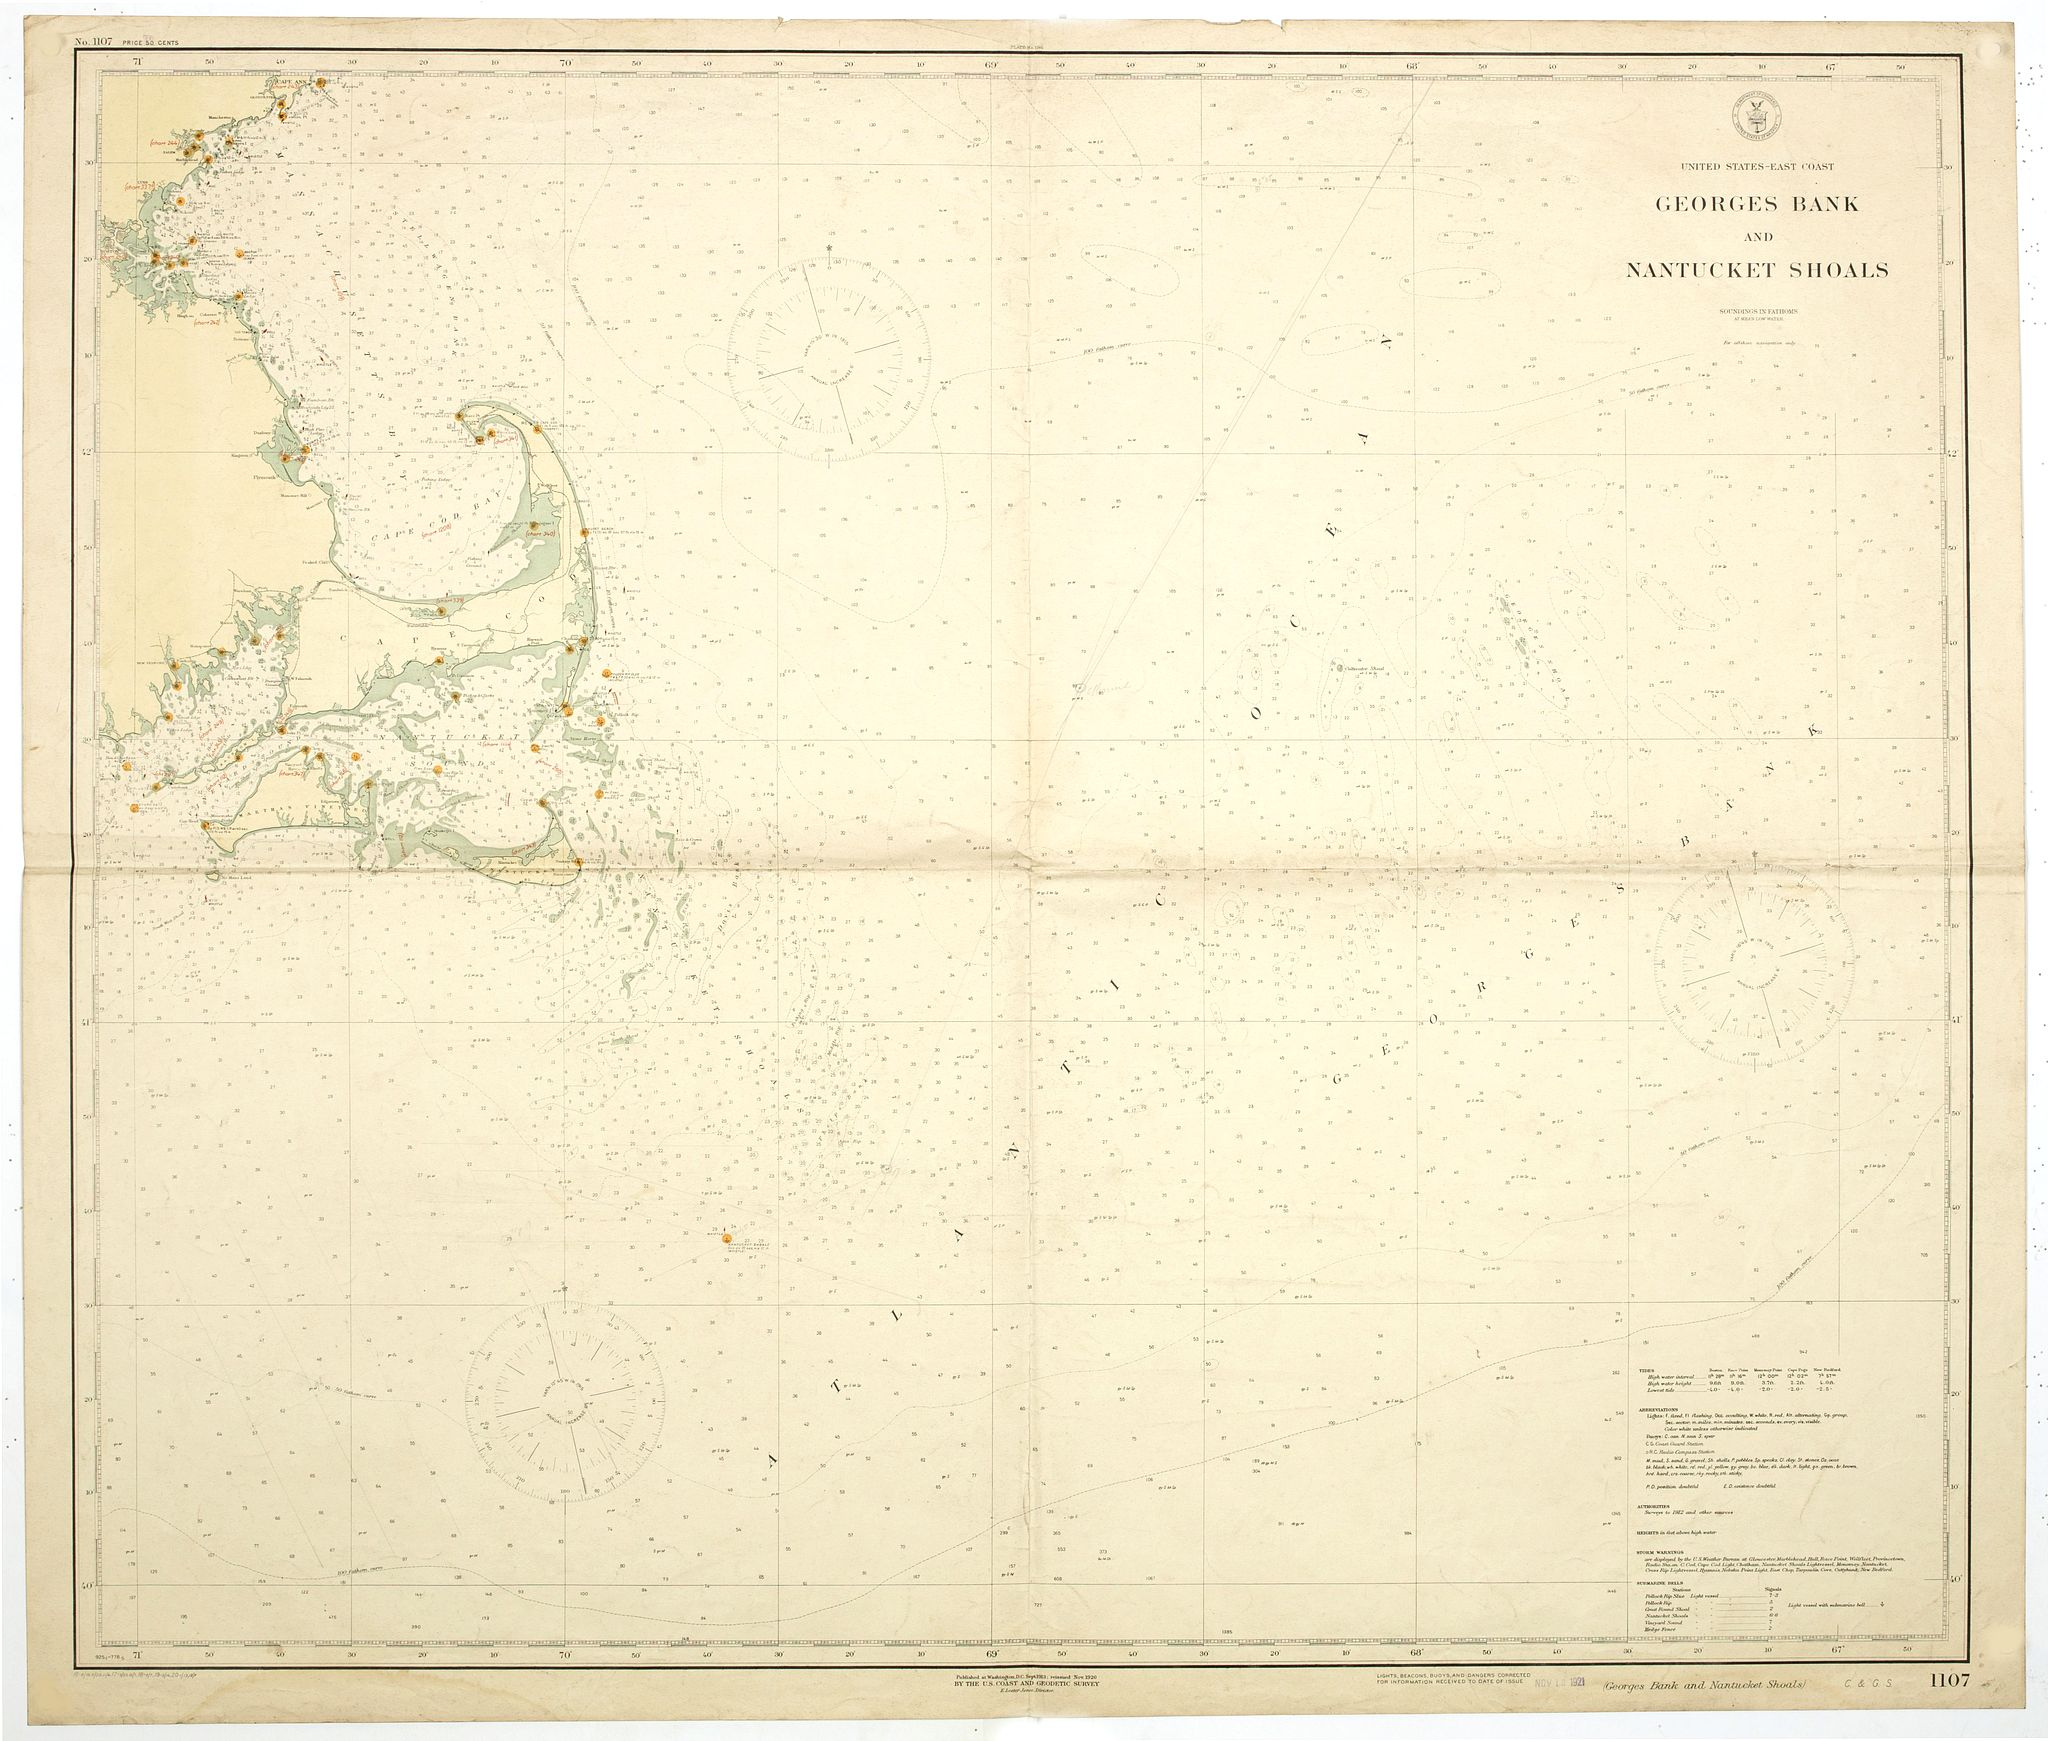 U. S. COAST AND GEODETIC SURVEY.,  Georges Bank and Nantucket shoals., antique map, old maps